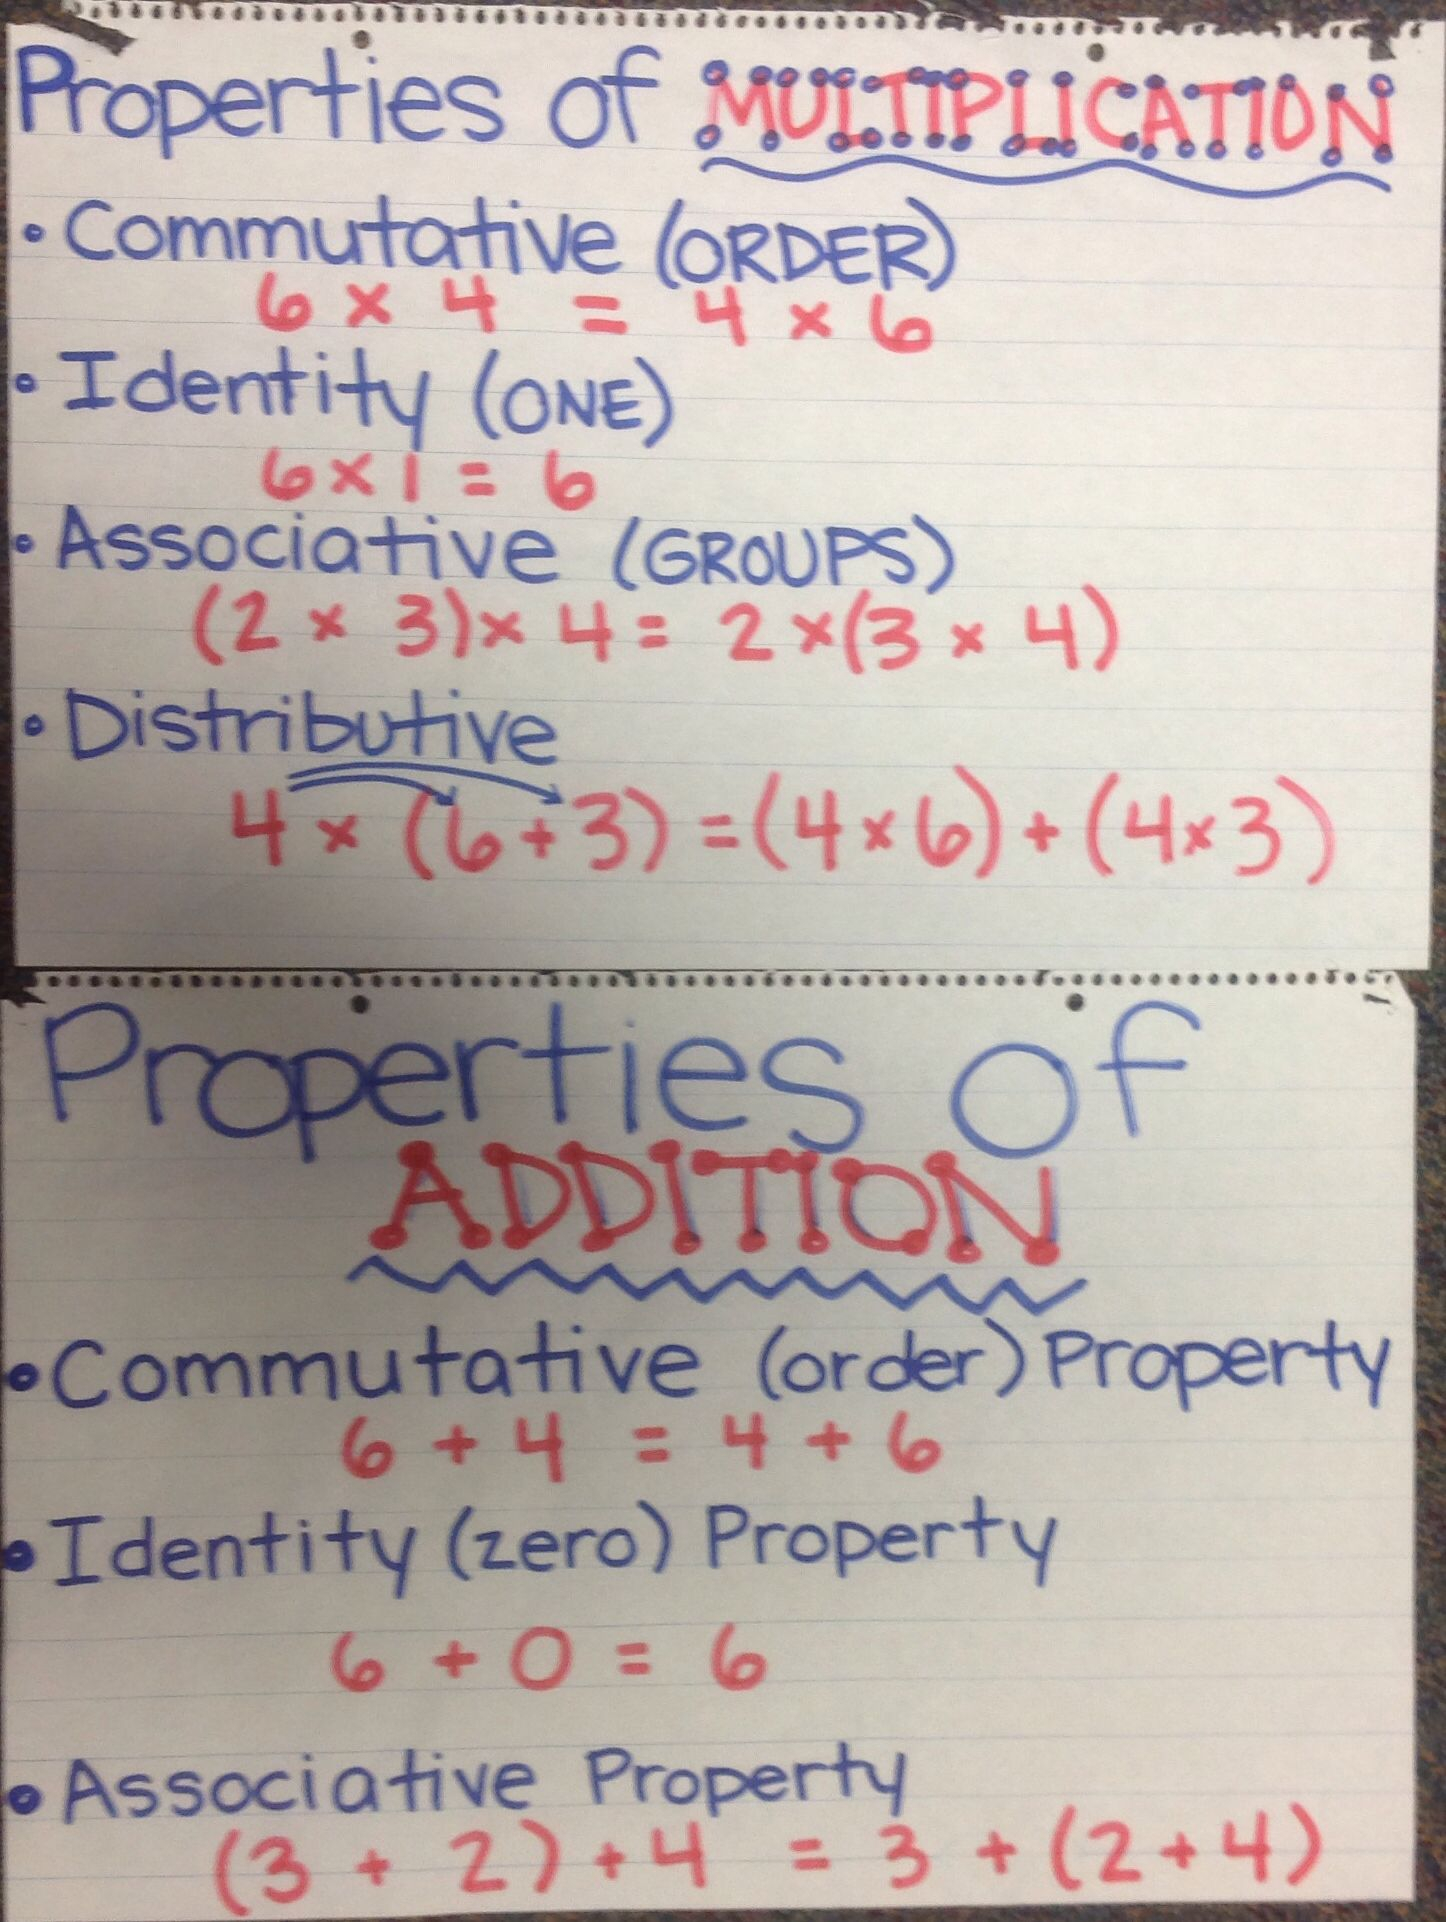 Properties Of Multiplication And Addition - Mrs. Ashley's